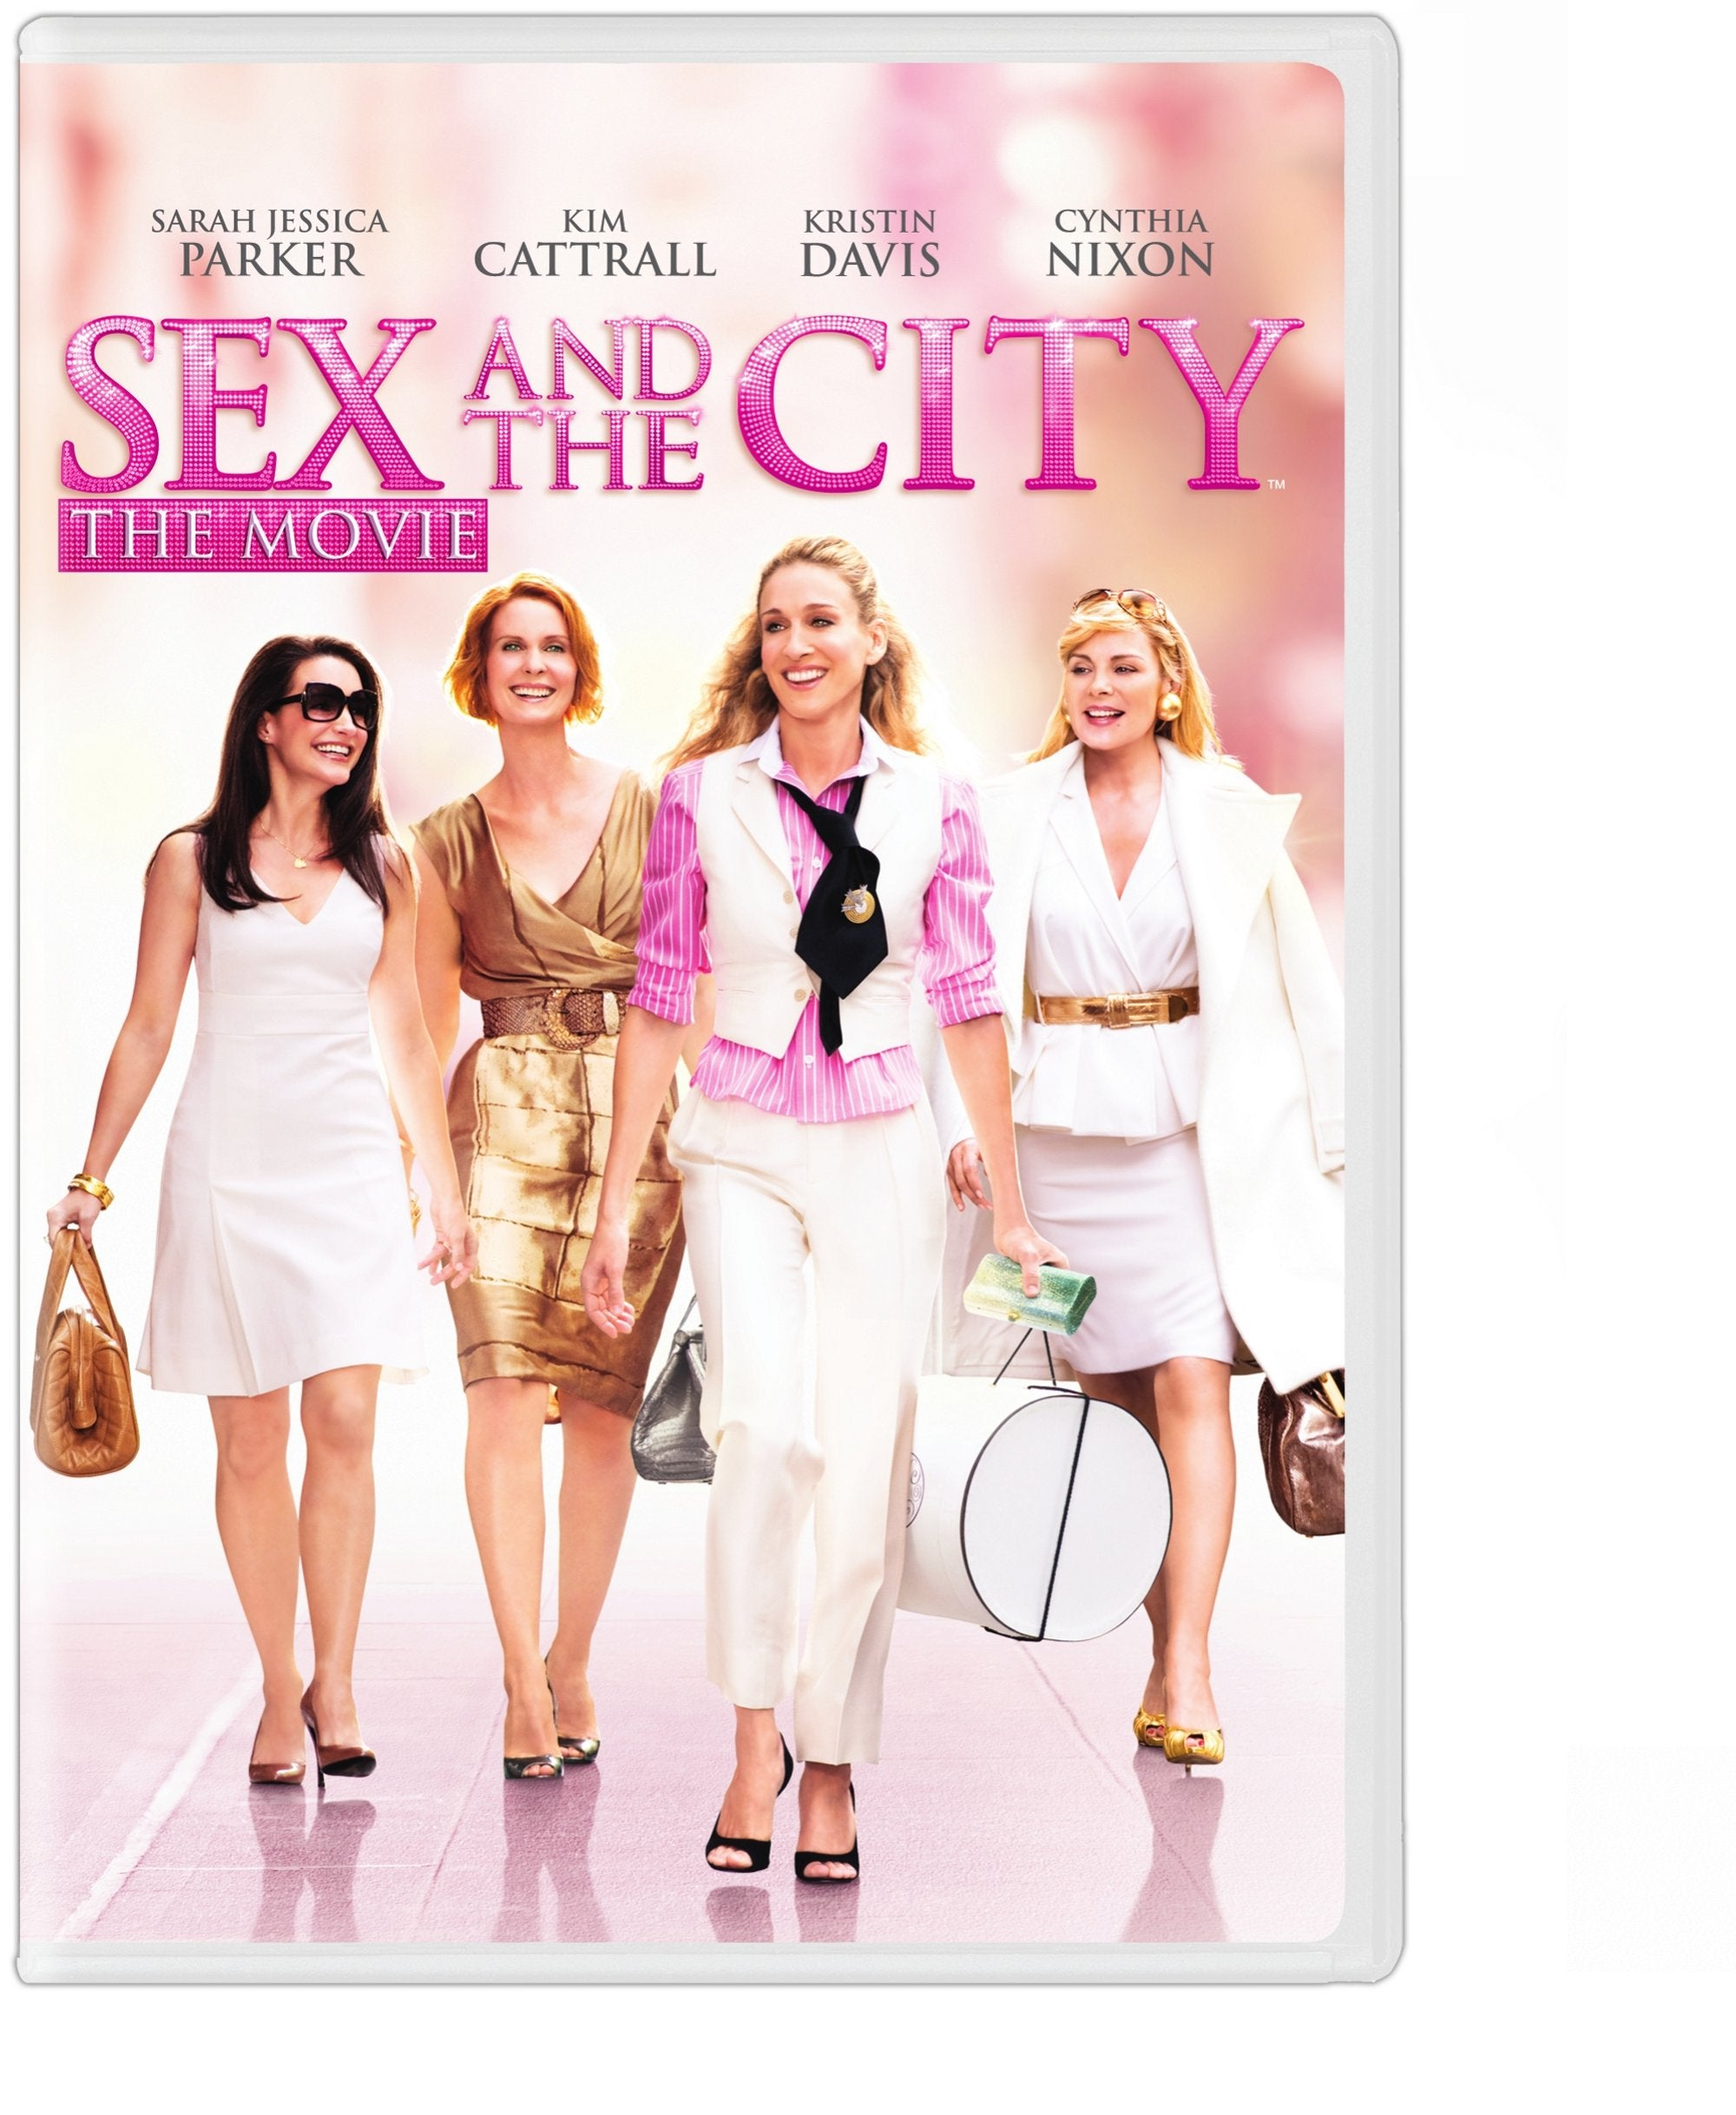 Sex and the city 1 movie online free